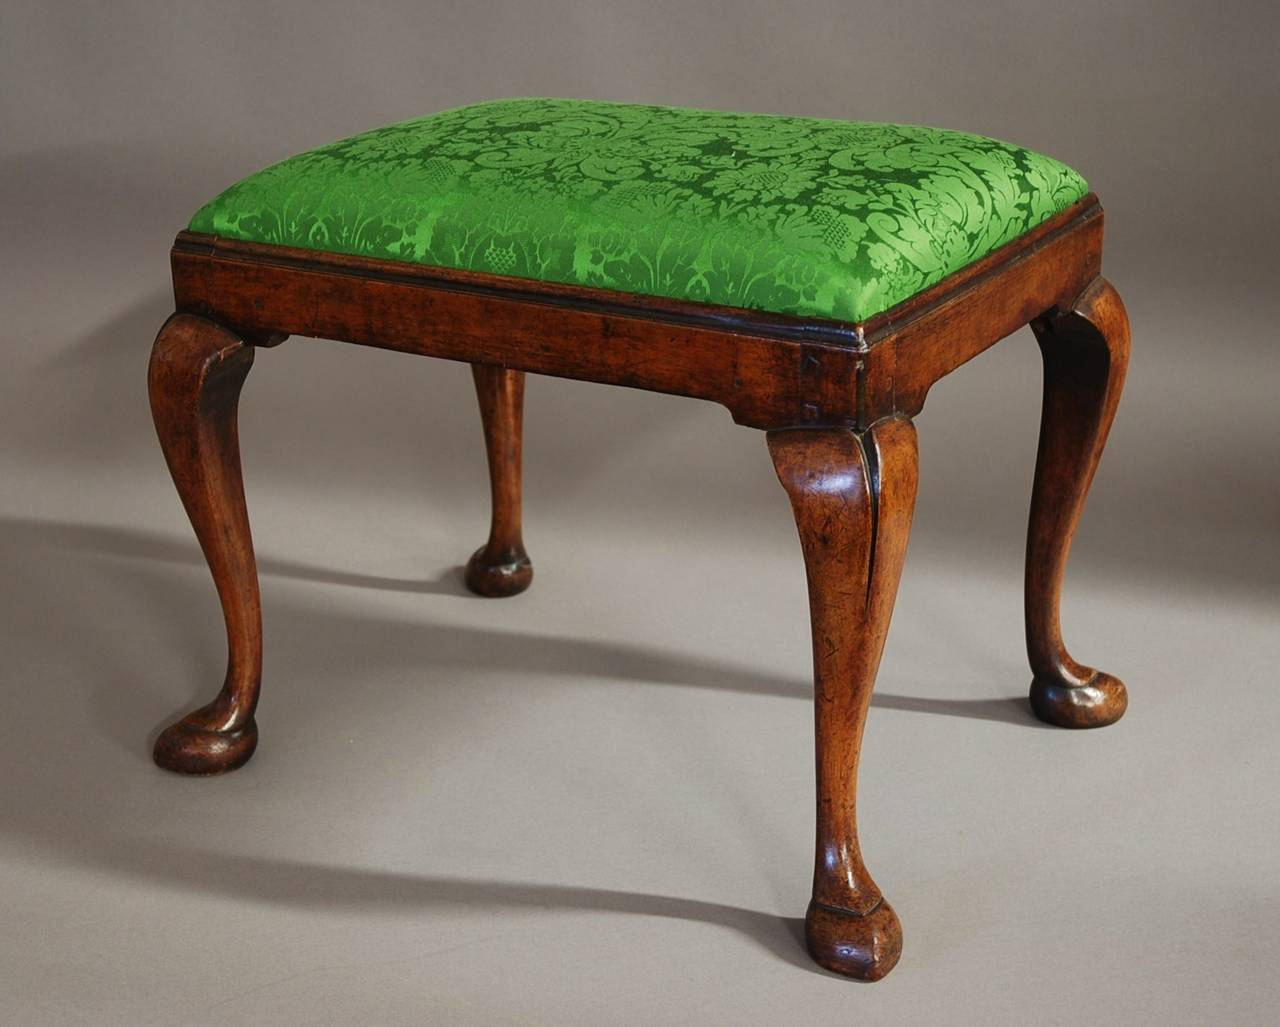 english early 20th century walnut cabriole leg stool in the queen anne style for sale